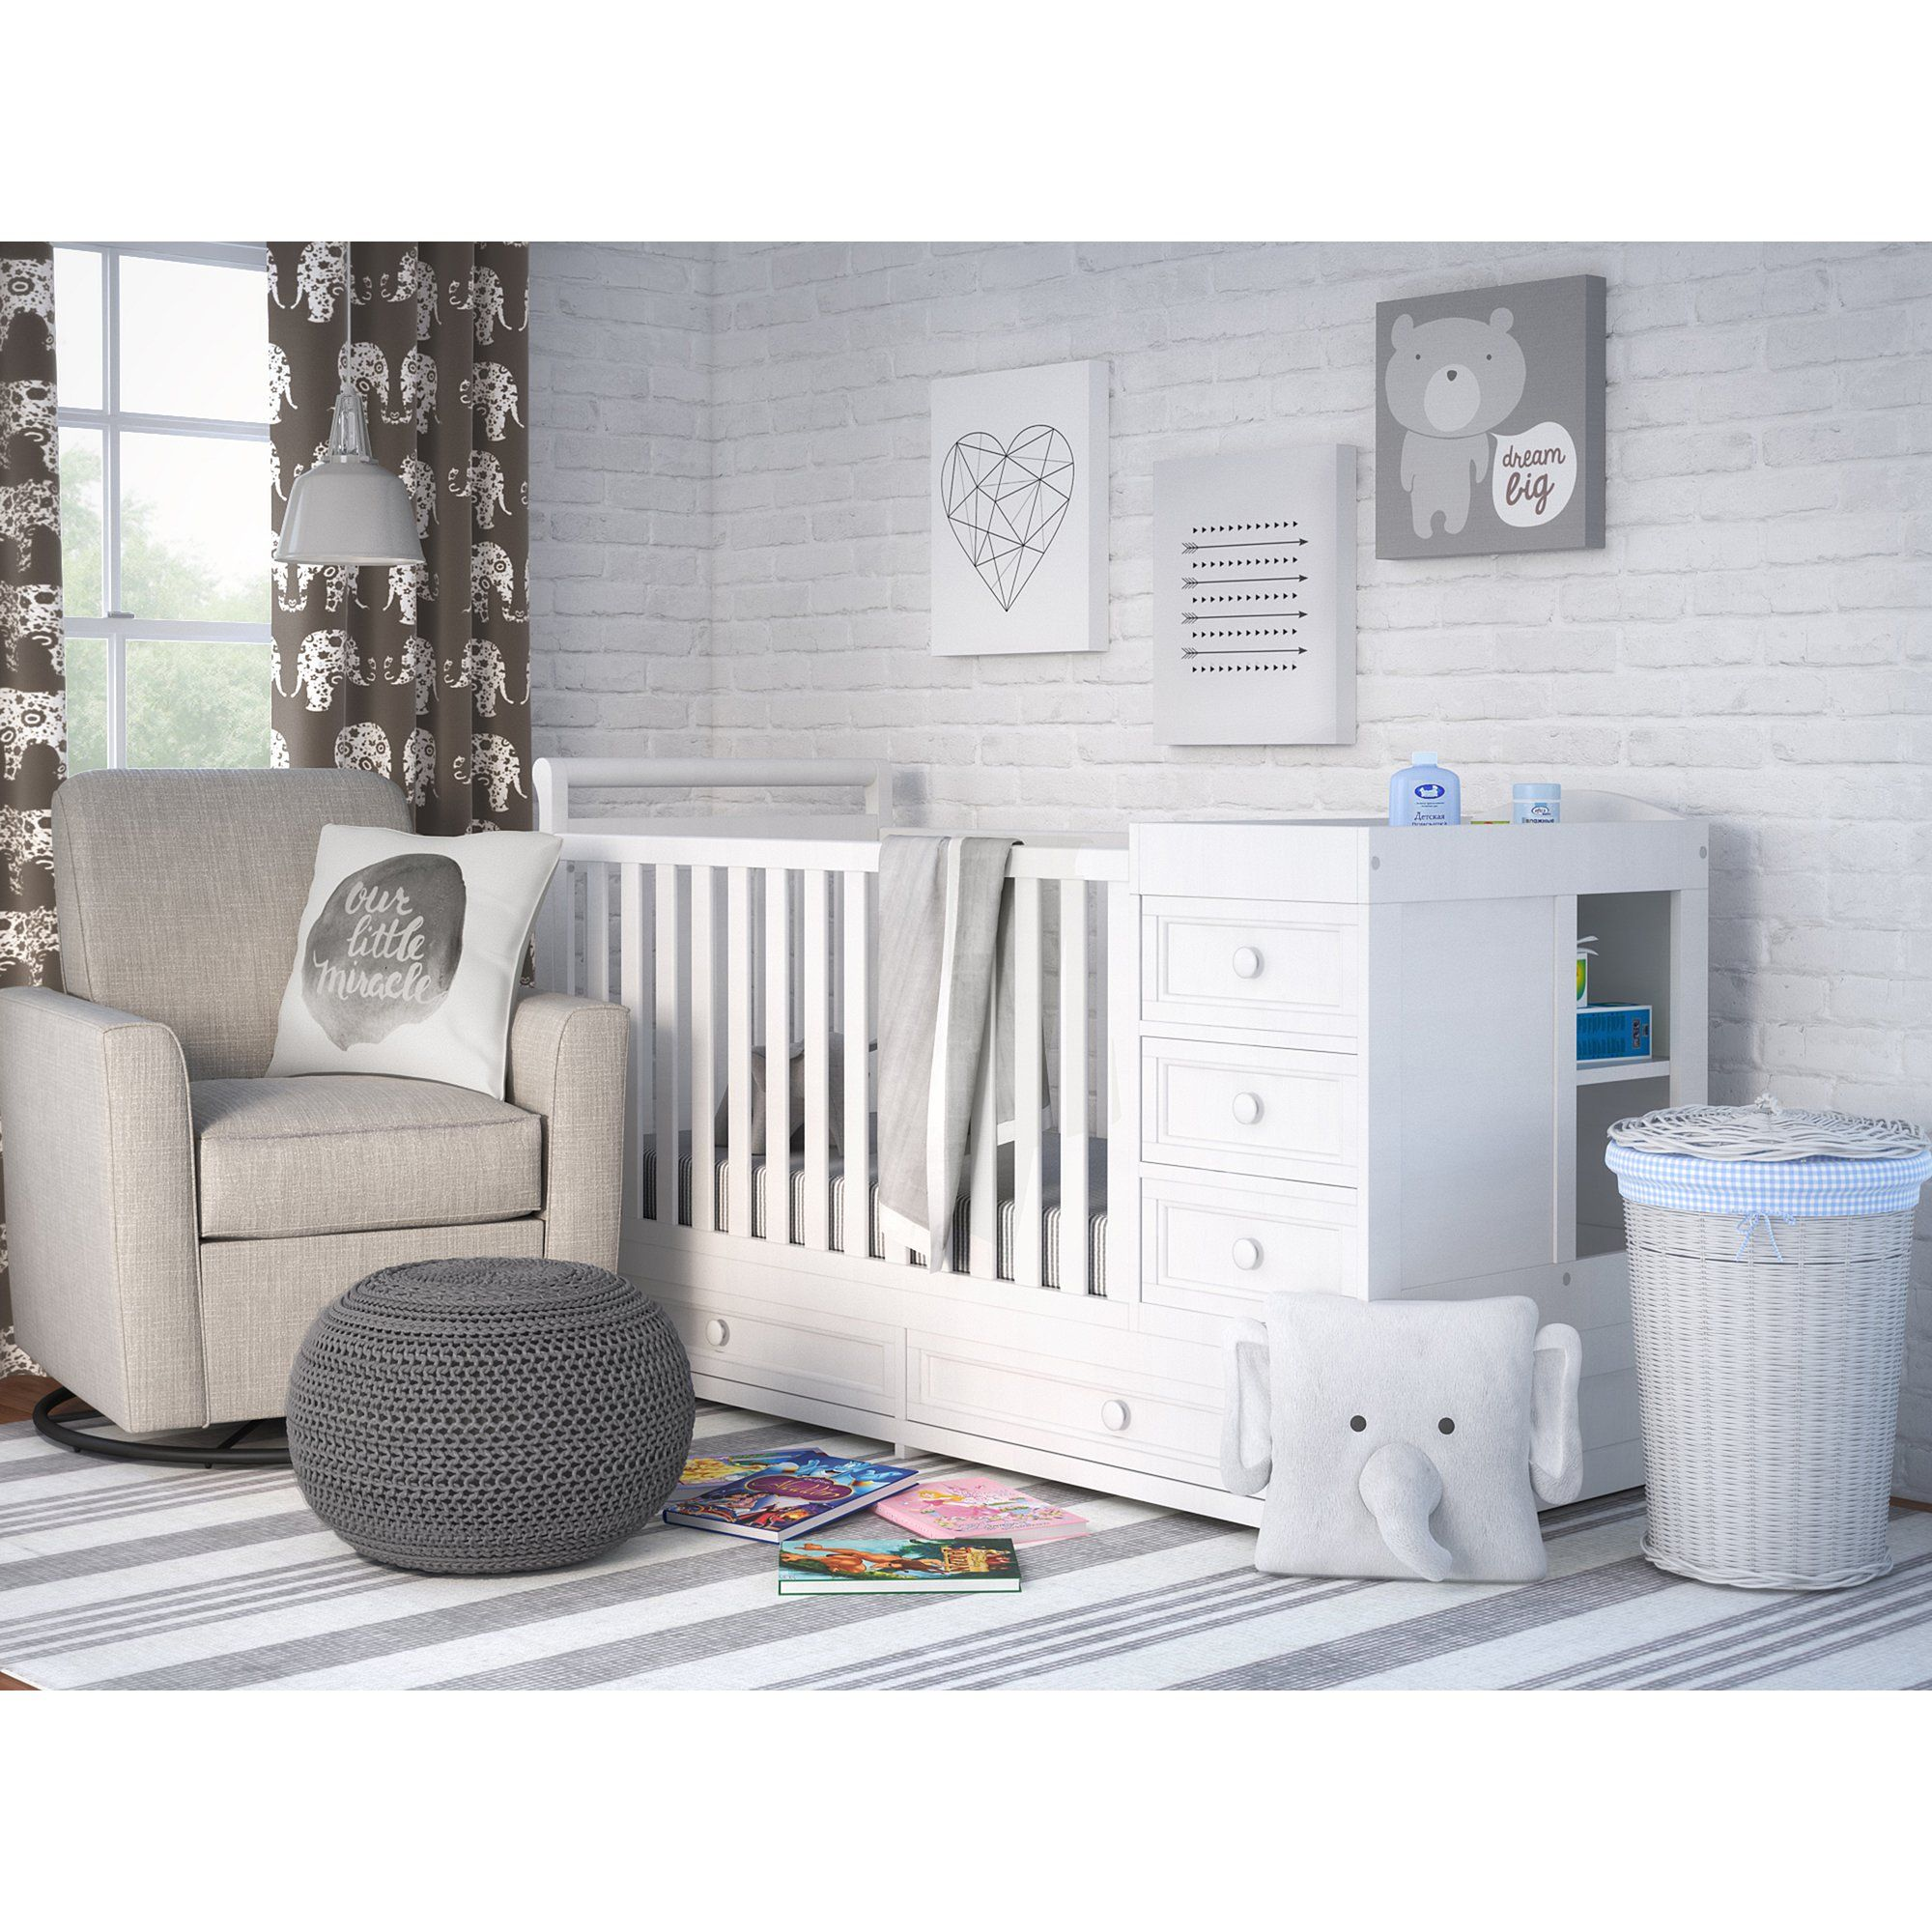 Main Image Zoomed Cribs Convertible Crib Furniture